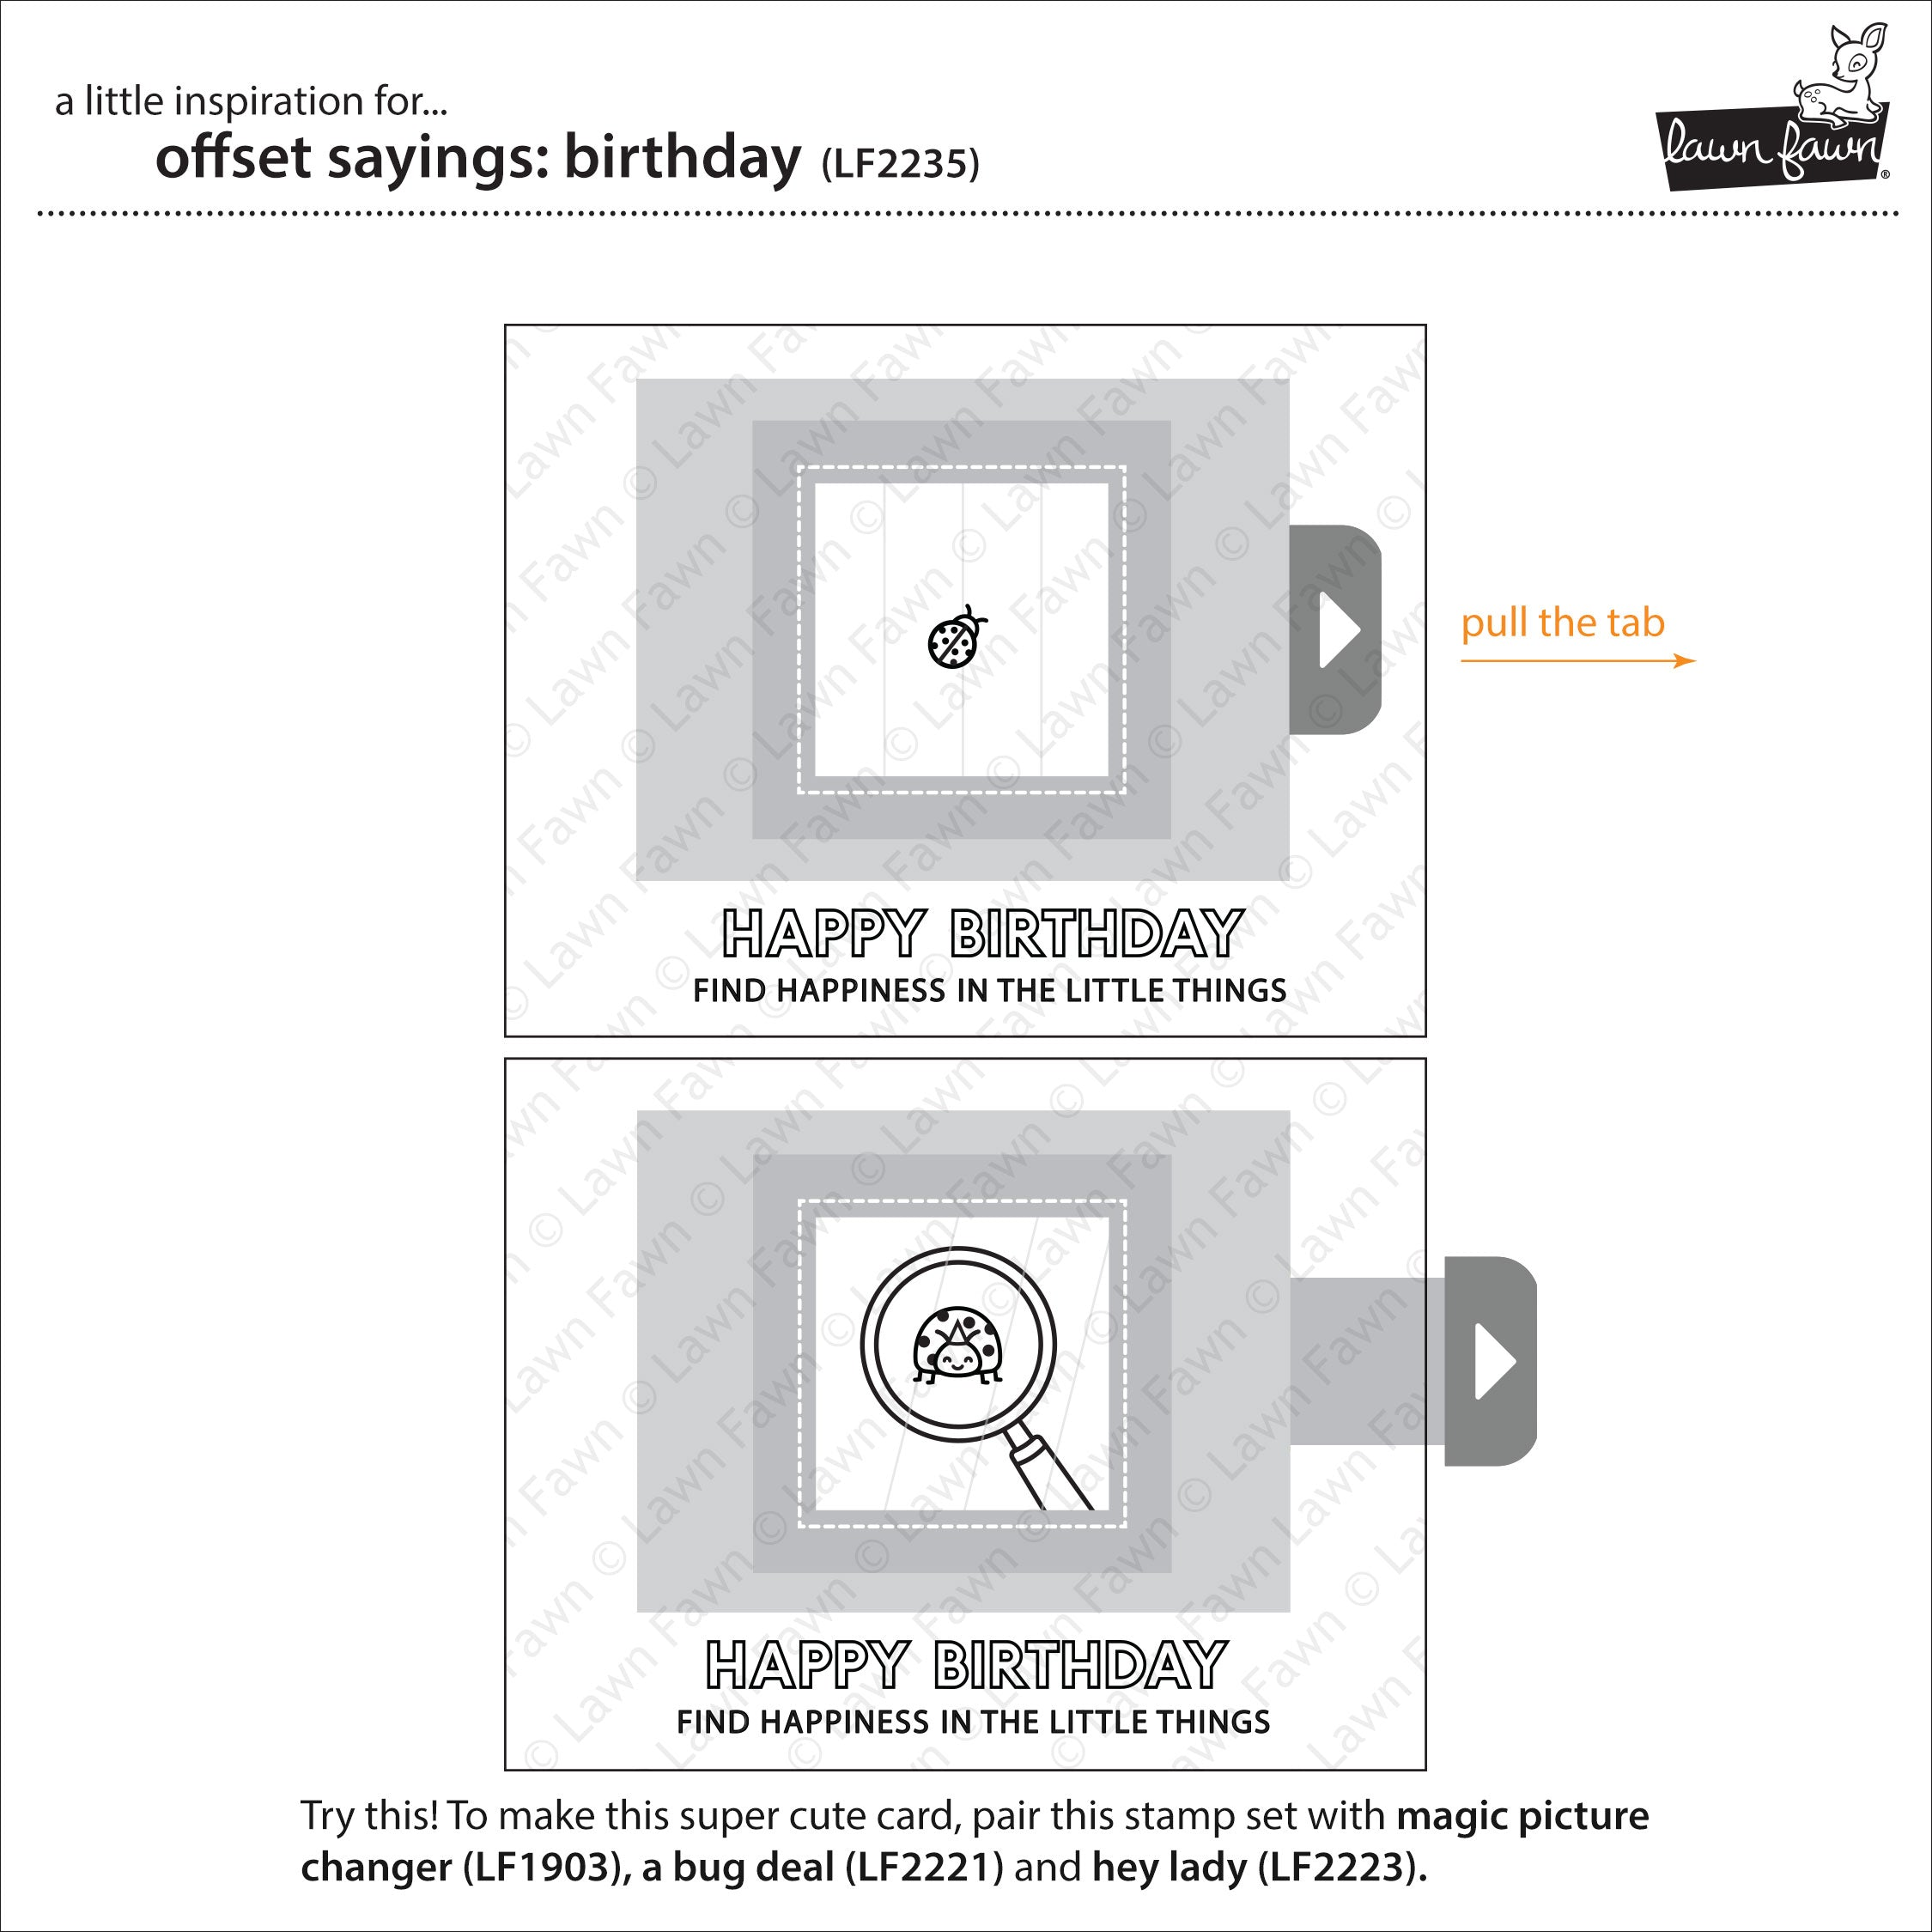 offset sayings: birthday